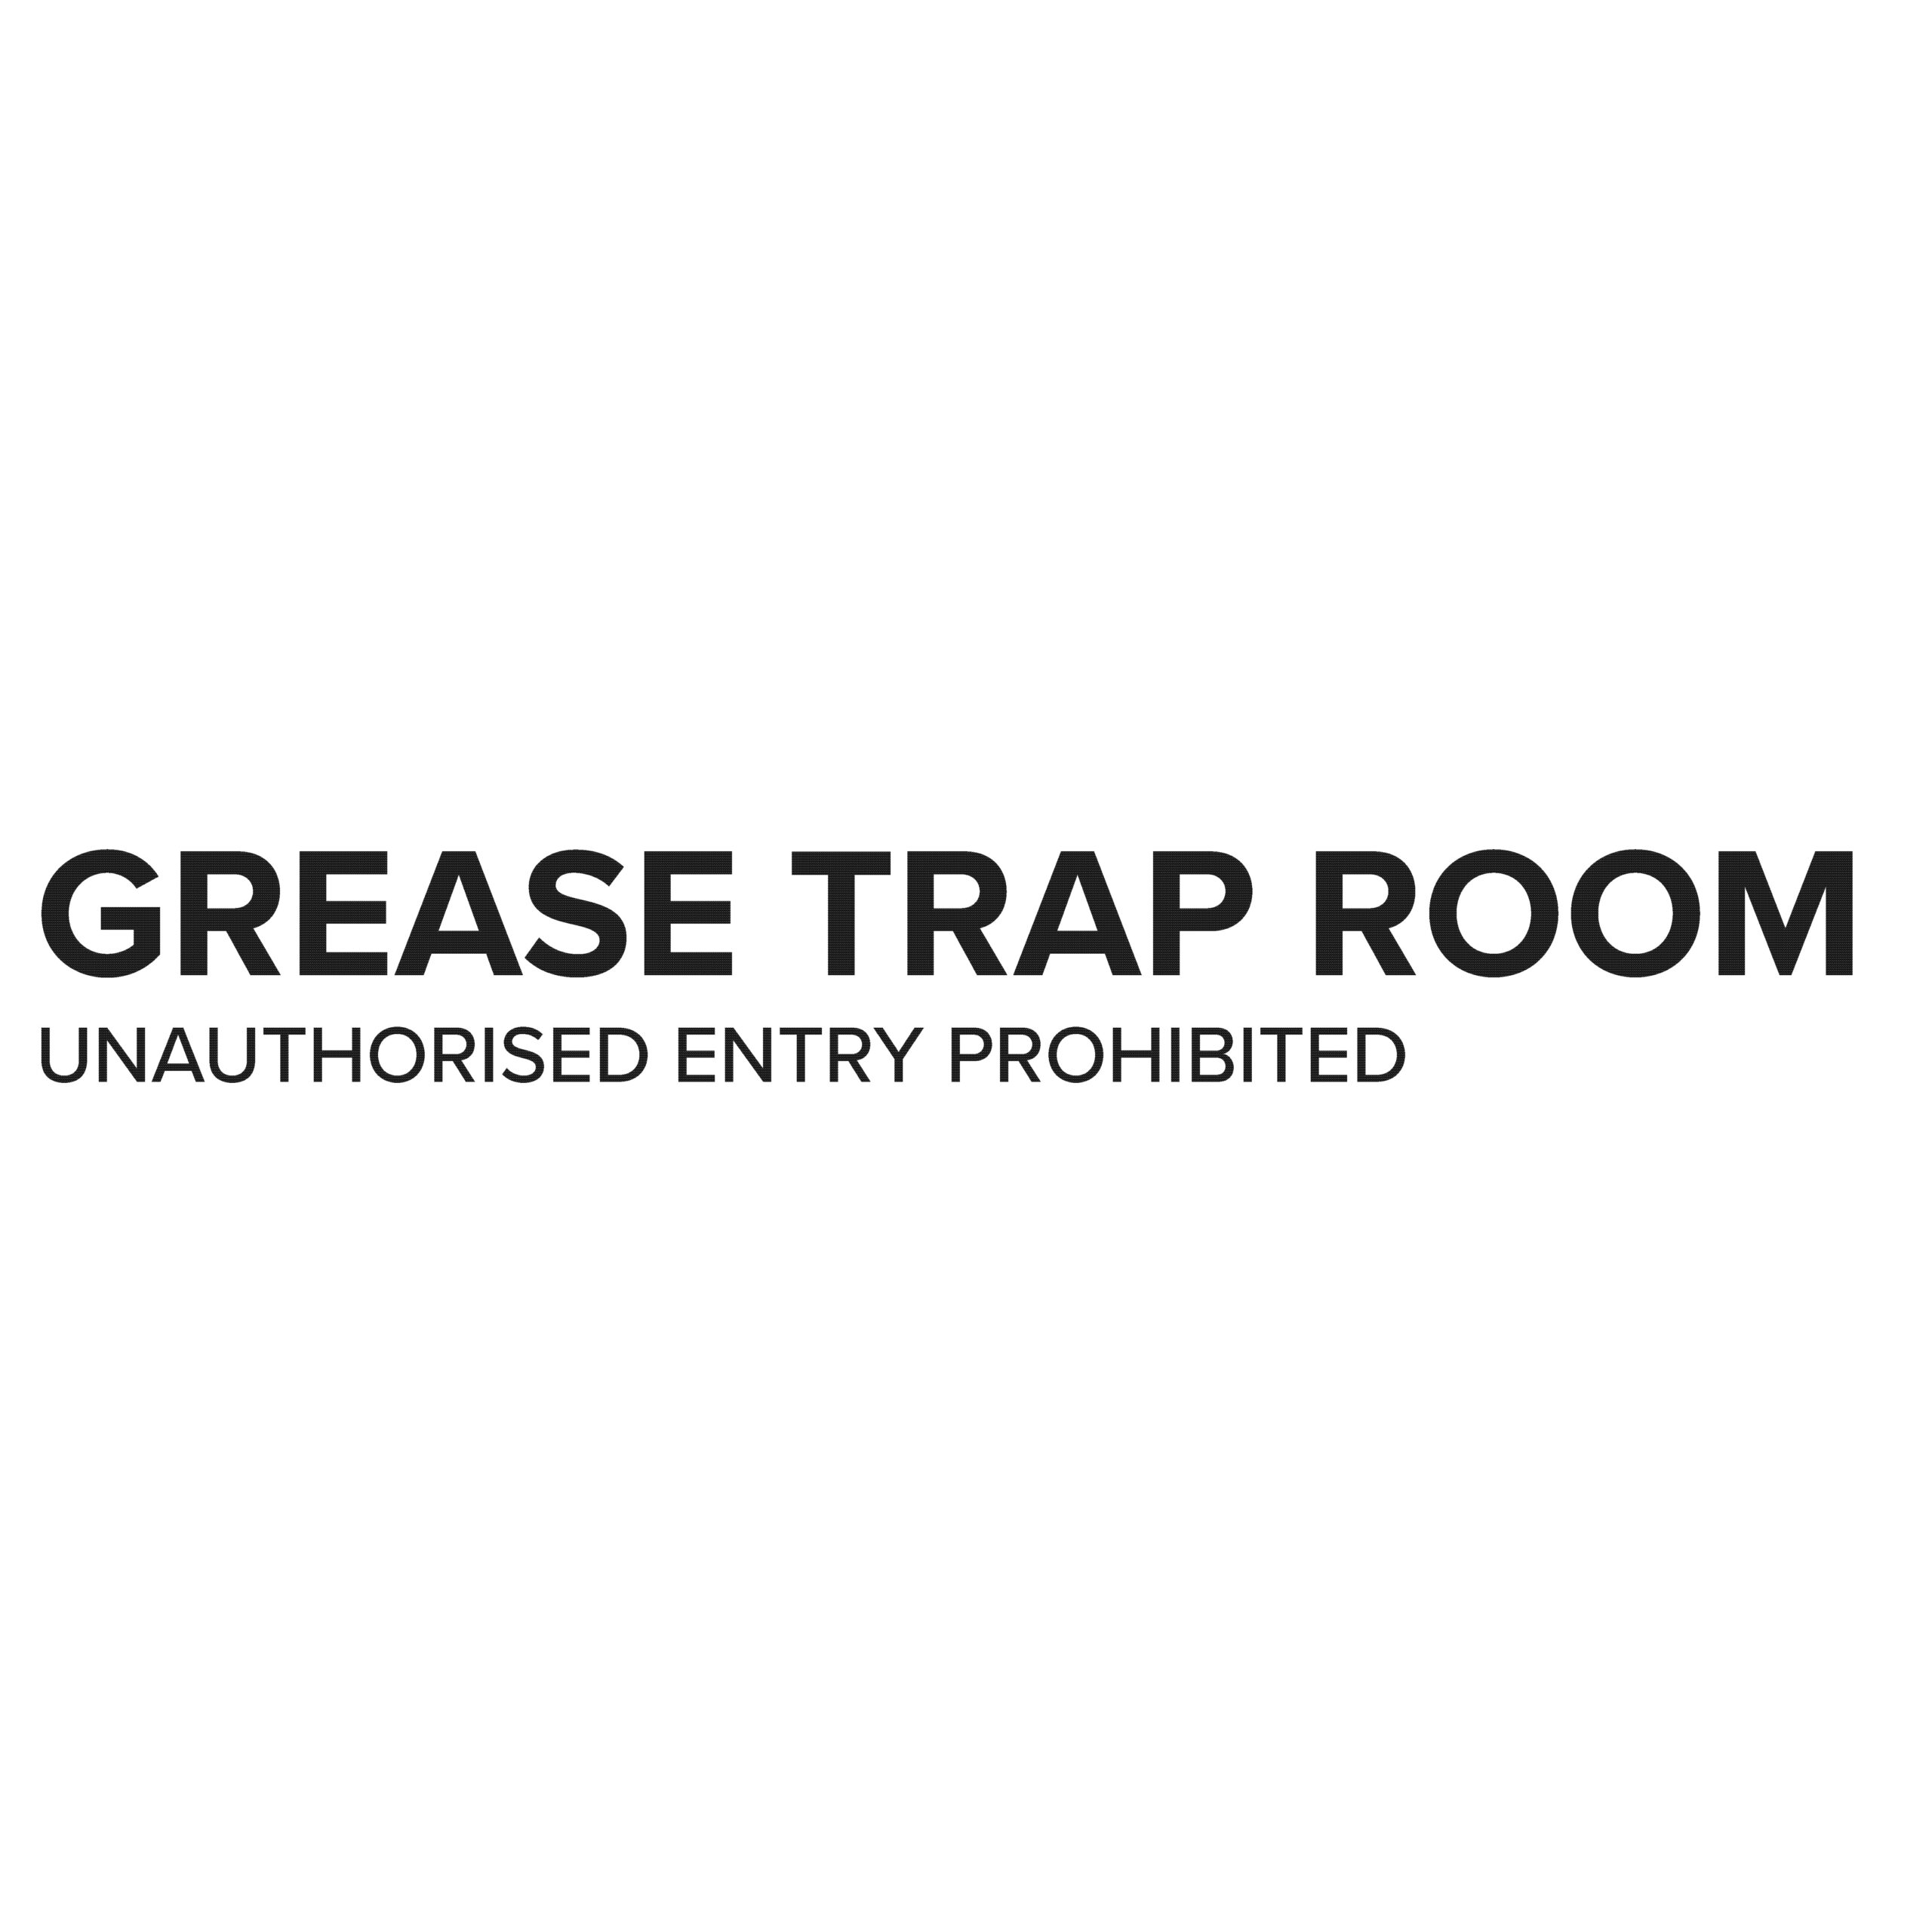 GREASE TRAP ROOM SIGN scaled